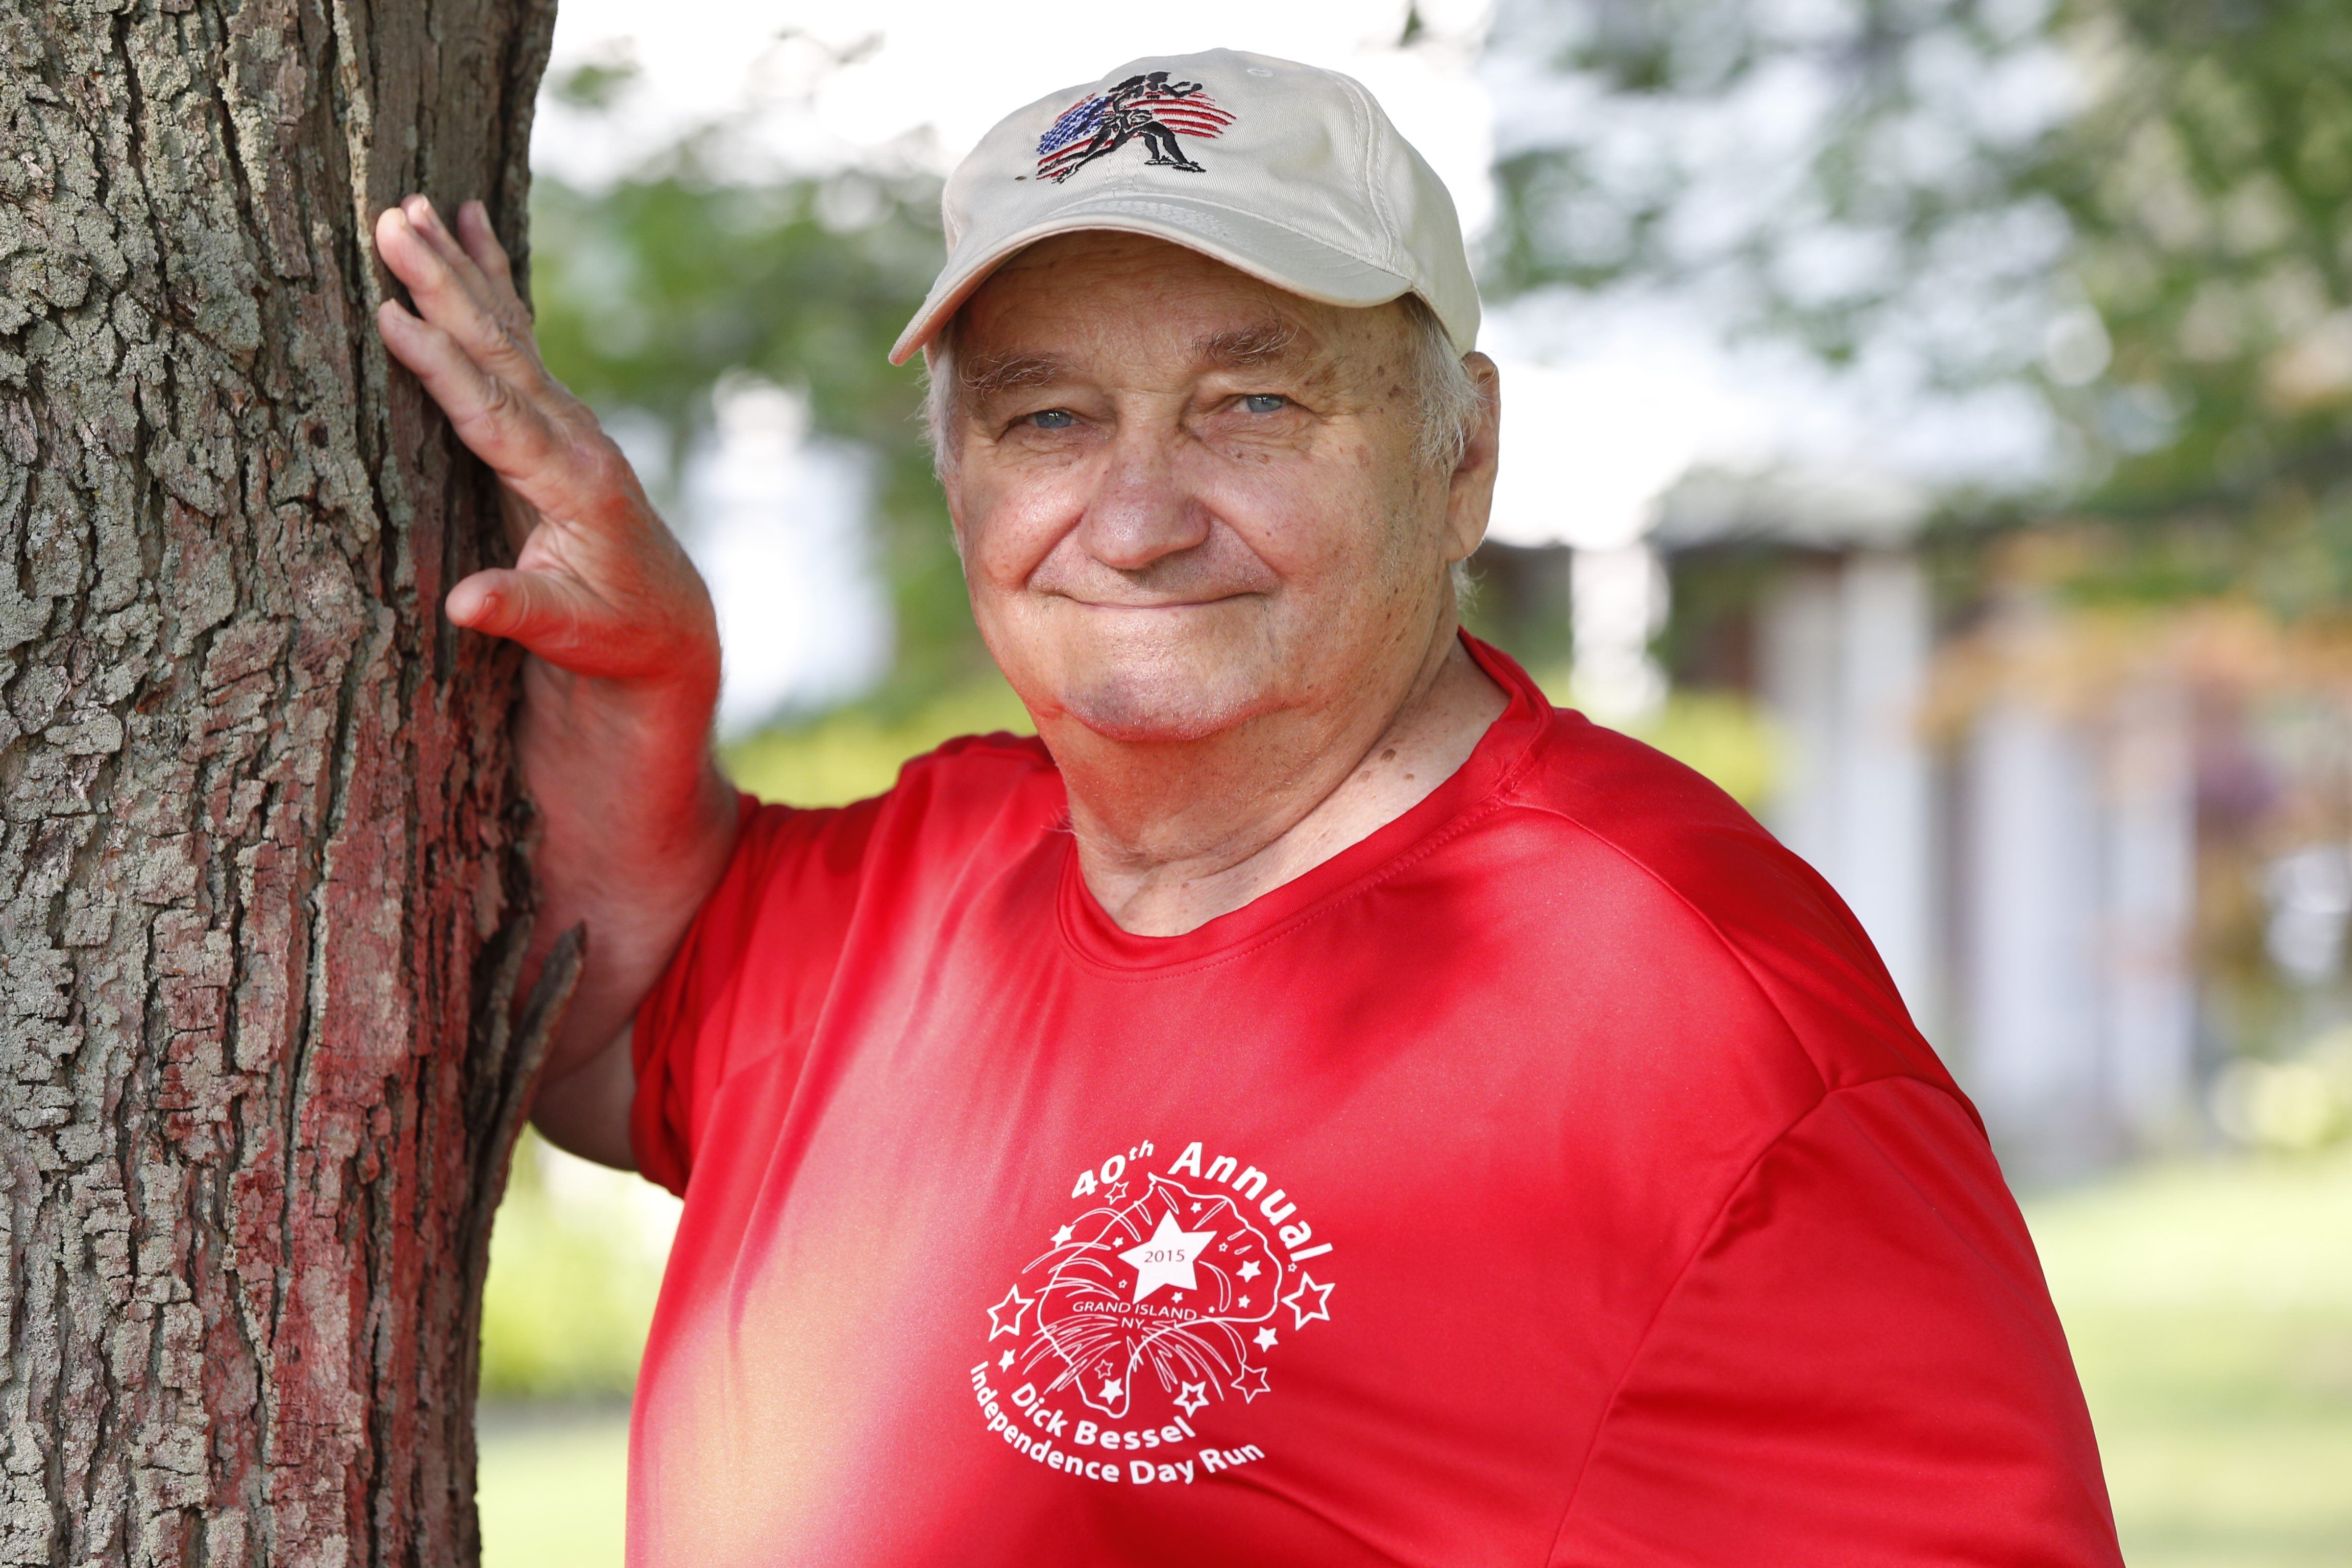 Dick Bessel made such an impact on the running scene in Grand Island that the town long ago opted to name its annual  Independence Day event in his honor.